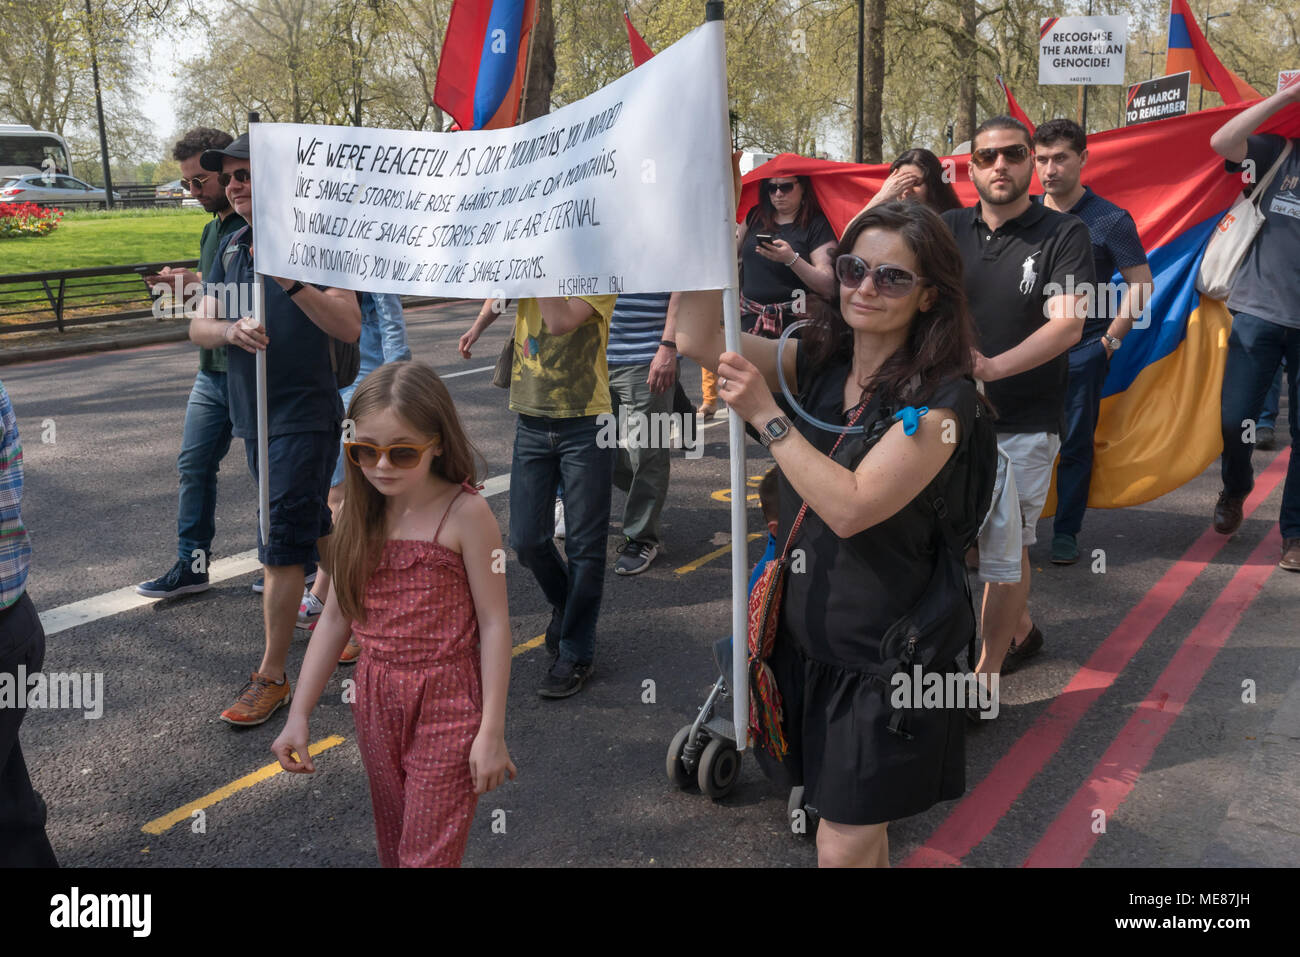 London, UK. 21st April 2018. Armenians carry a banner with a 1941 poem by H Shiraz, 'We were peaceful as our mountains You invaded like savage storms. We rose against you like our mountains, You howled like savage storms. But we are eternal as our mountains. You will die out like savage storms' on the march through London from Marble Arch to the Cenotaph at the start of a series of events commemorating the 103rd anniversary of the beginning of the Armenian Genocide. Credit: Peter Marshall/Alamy Live News - Stock Image